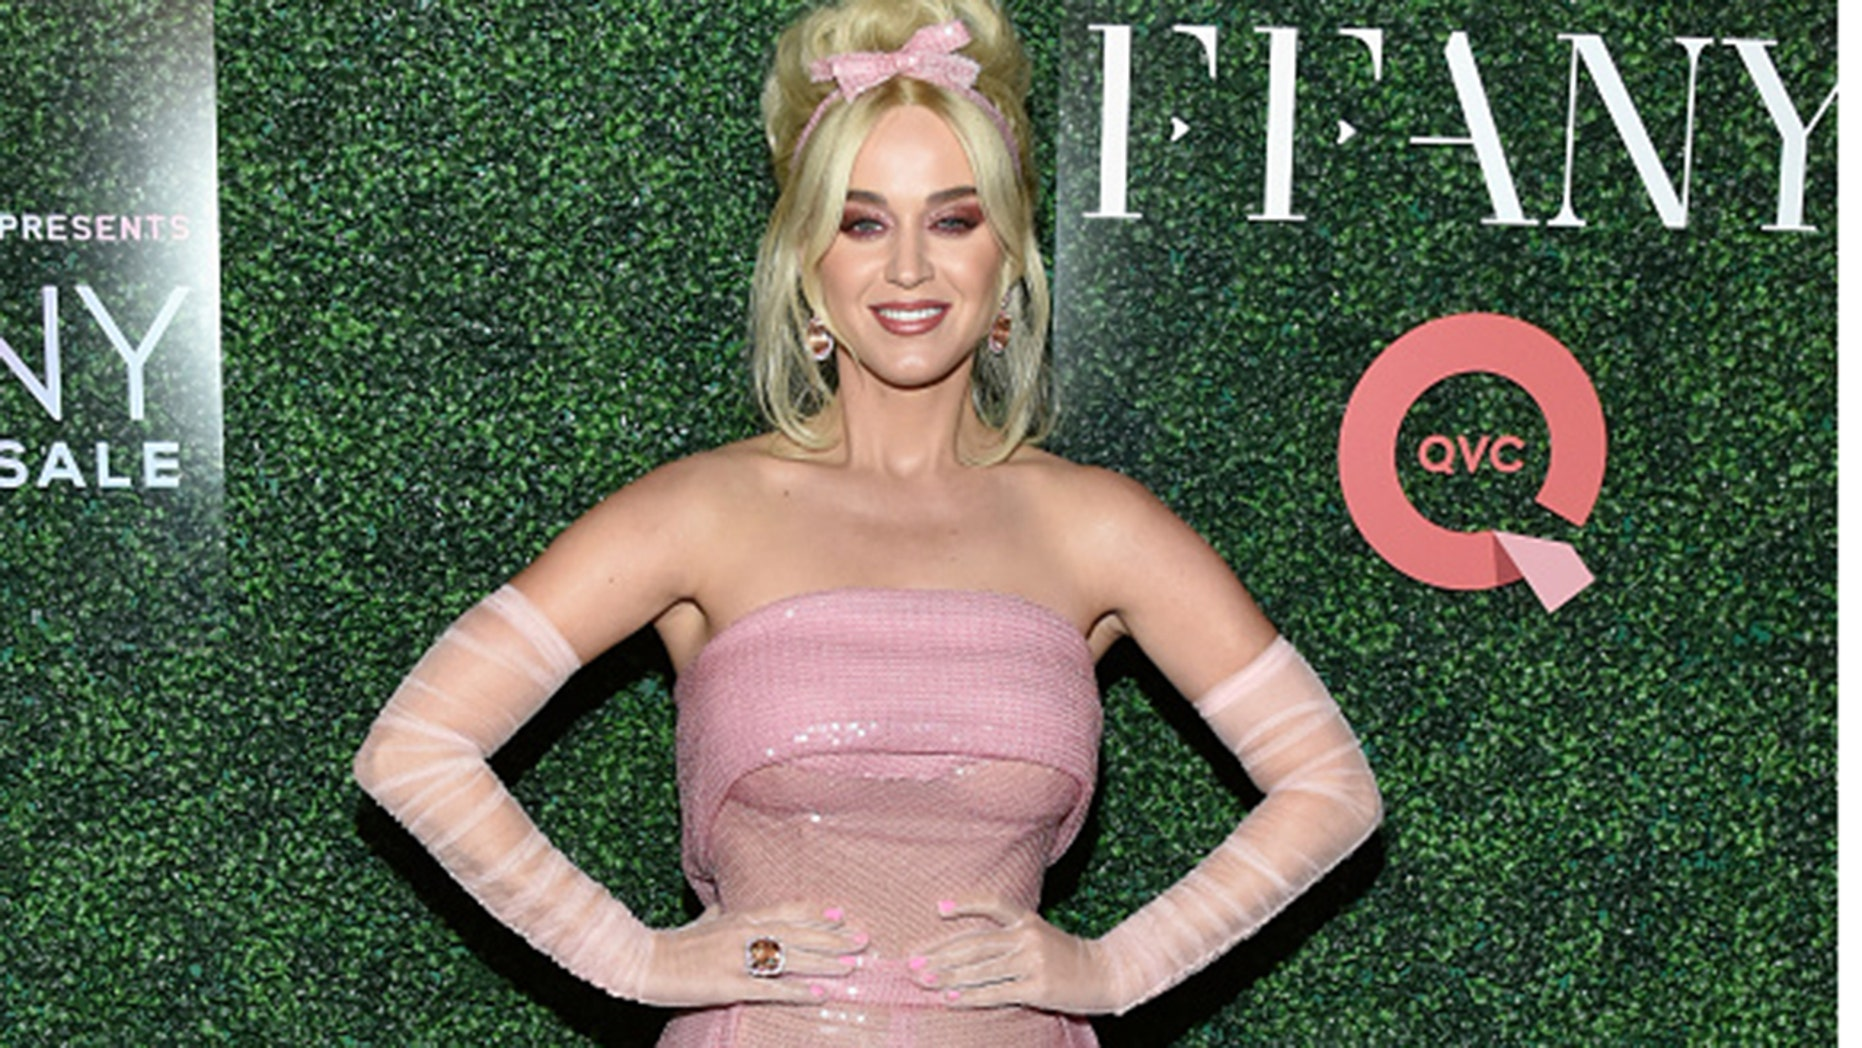 "NEW YORK, NY - OCTOBER 11: Katy Perry attends the 25th Annual QVC ""FFANY Shoes on Sale"" Gala at The Ziegfeld Ballroom on October 11, 2018 in New York City. (Photo by Eugene Gologursky/Getty Images for QVC)"